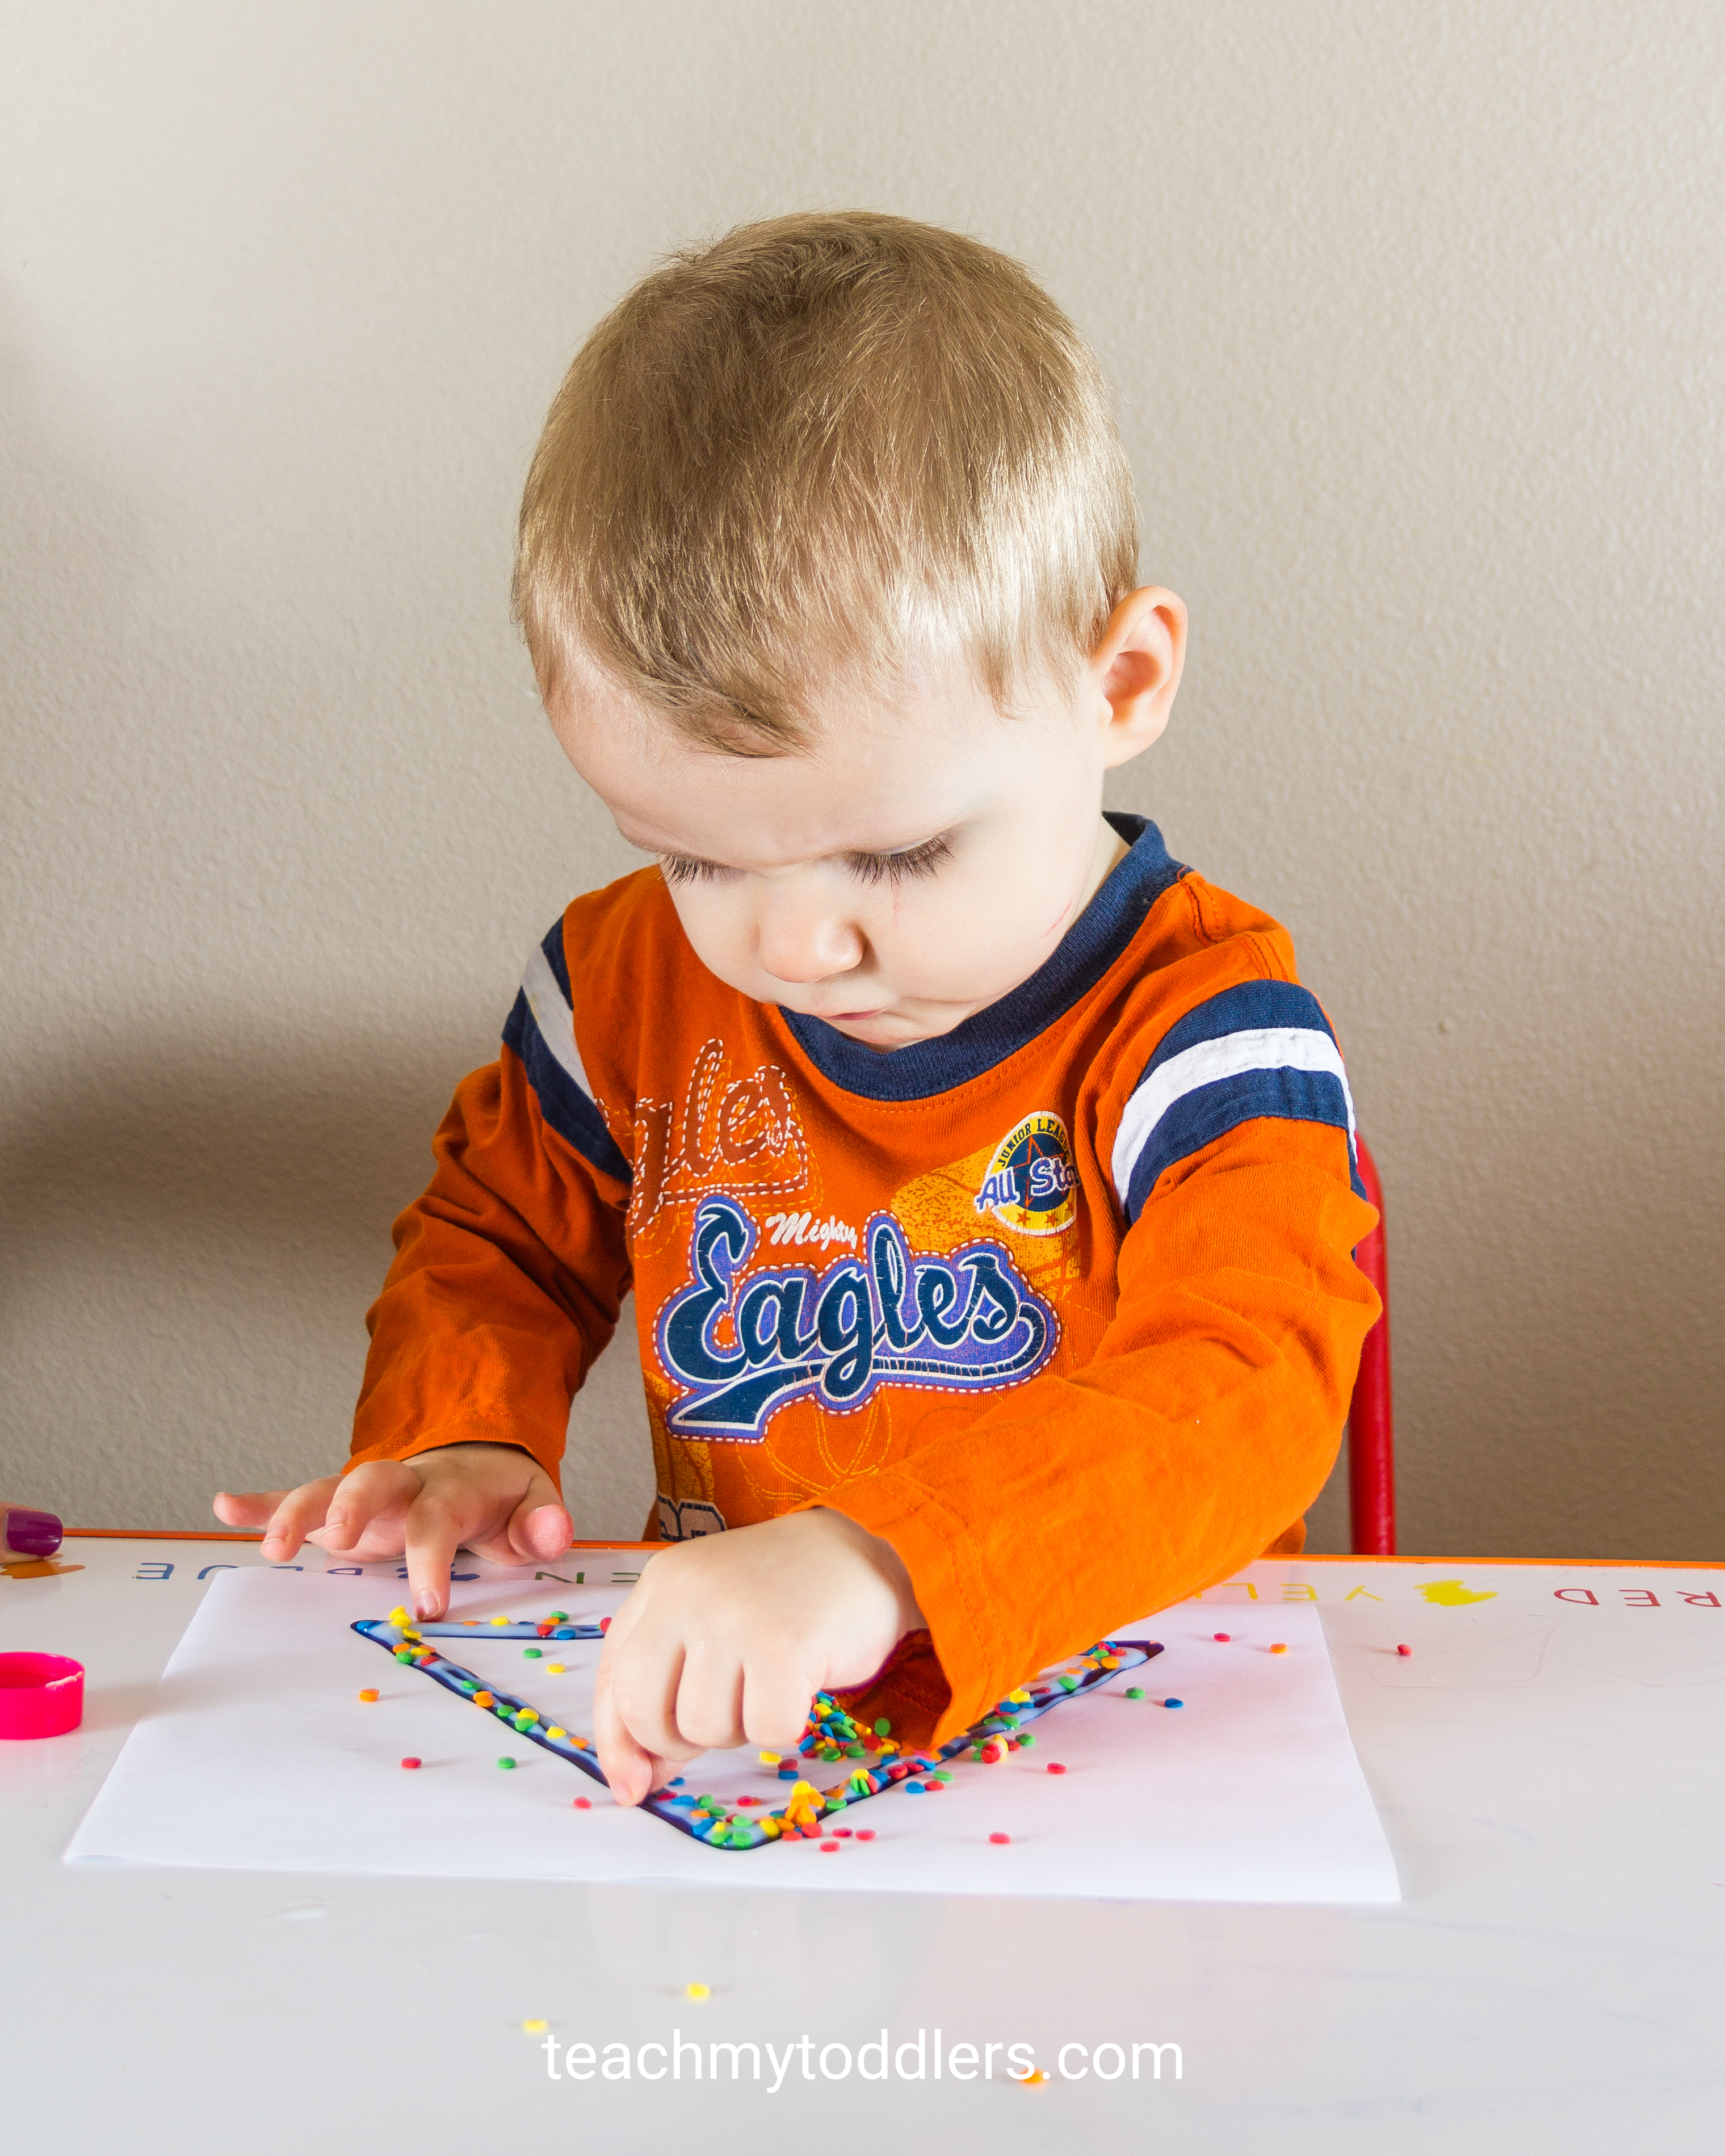 Discover how to use this decorating shapes activity to teach toddlers shapes